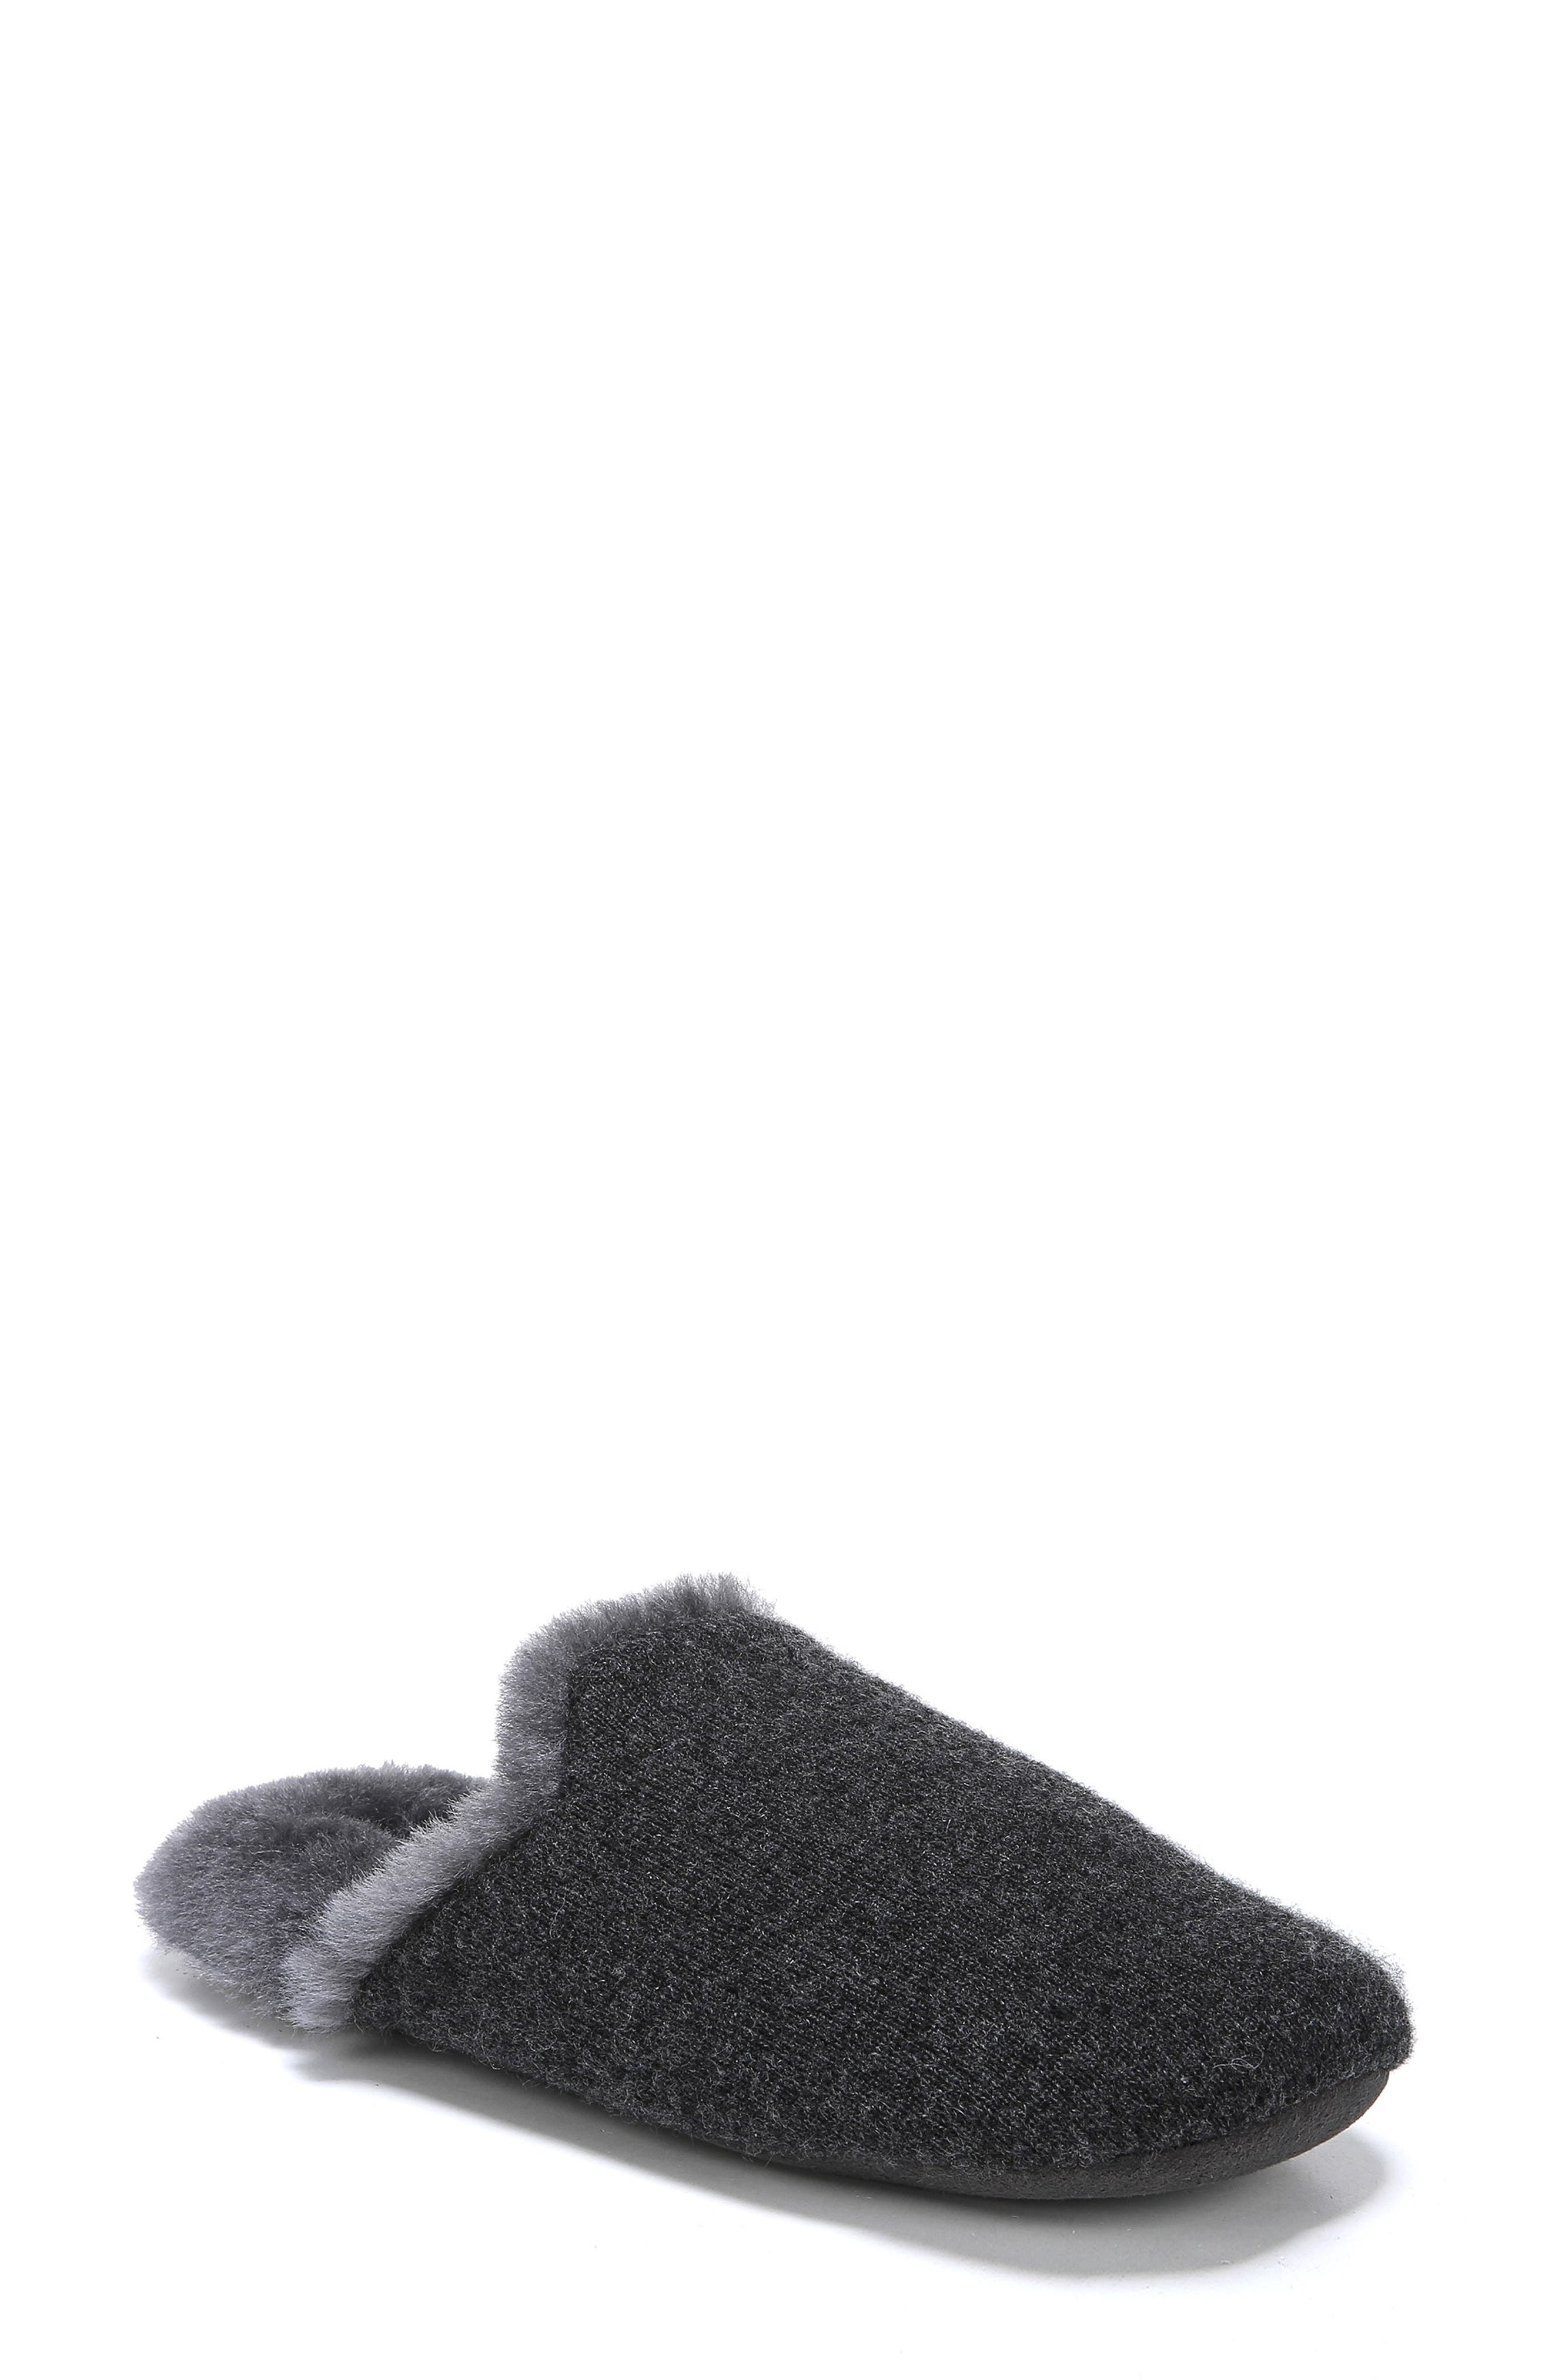 Cadie Genuine Shearling Slipper,                         Main,                         color, CHARCOAL